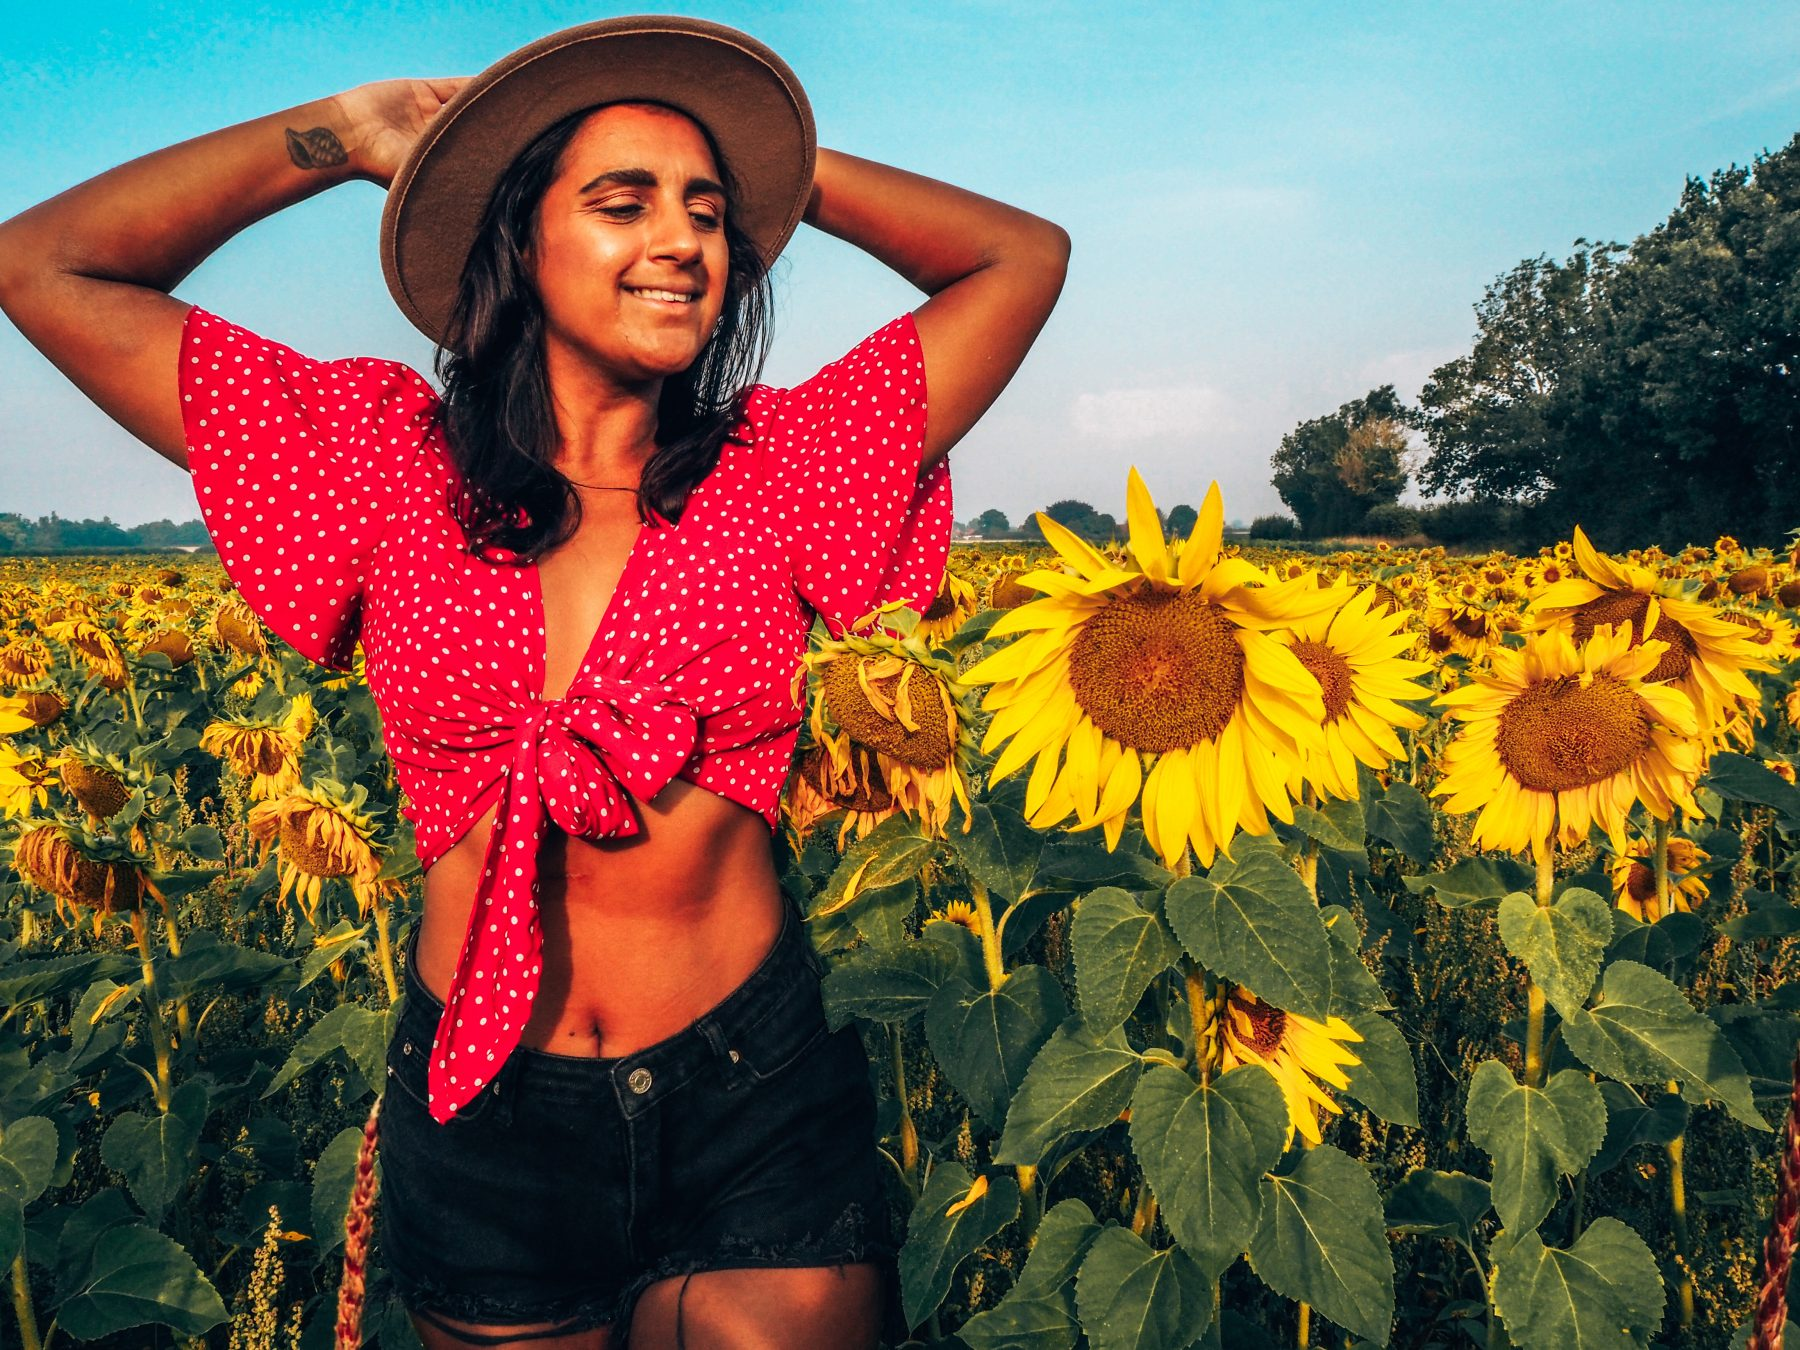 self-care rituals, absolutely lucy in red top and hat in sunflower field